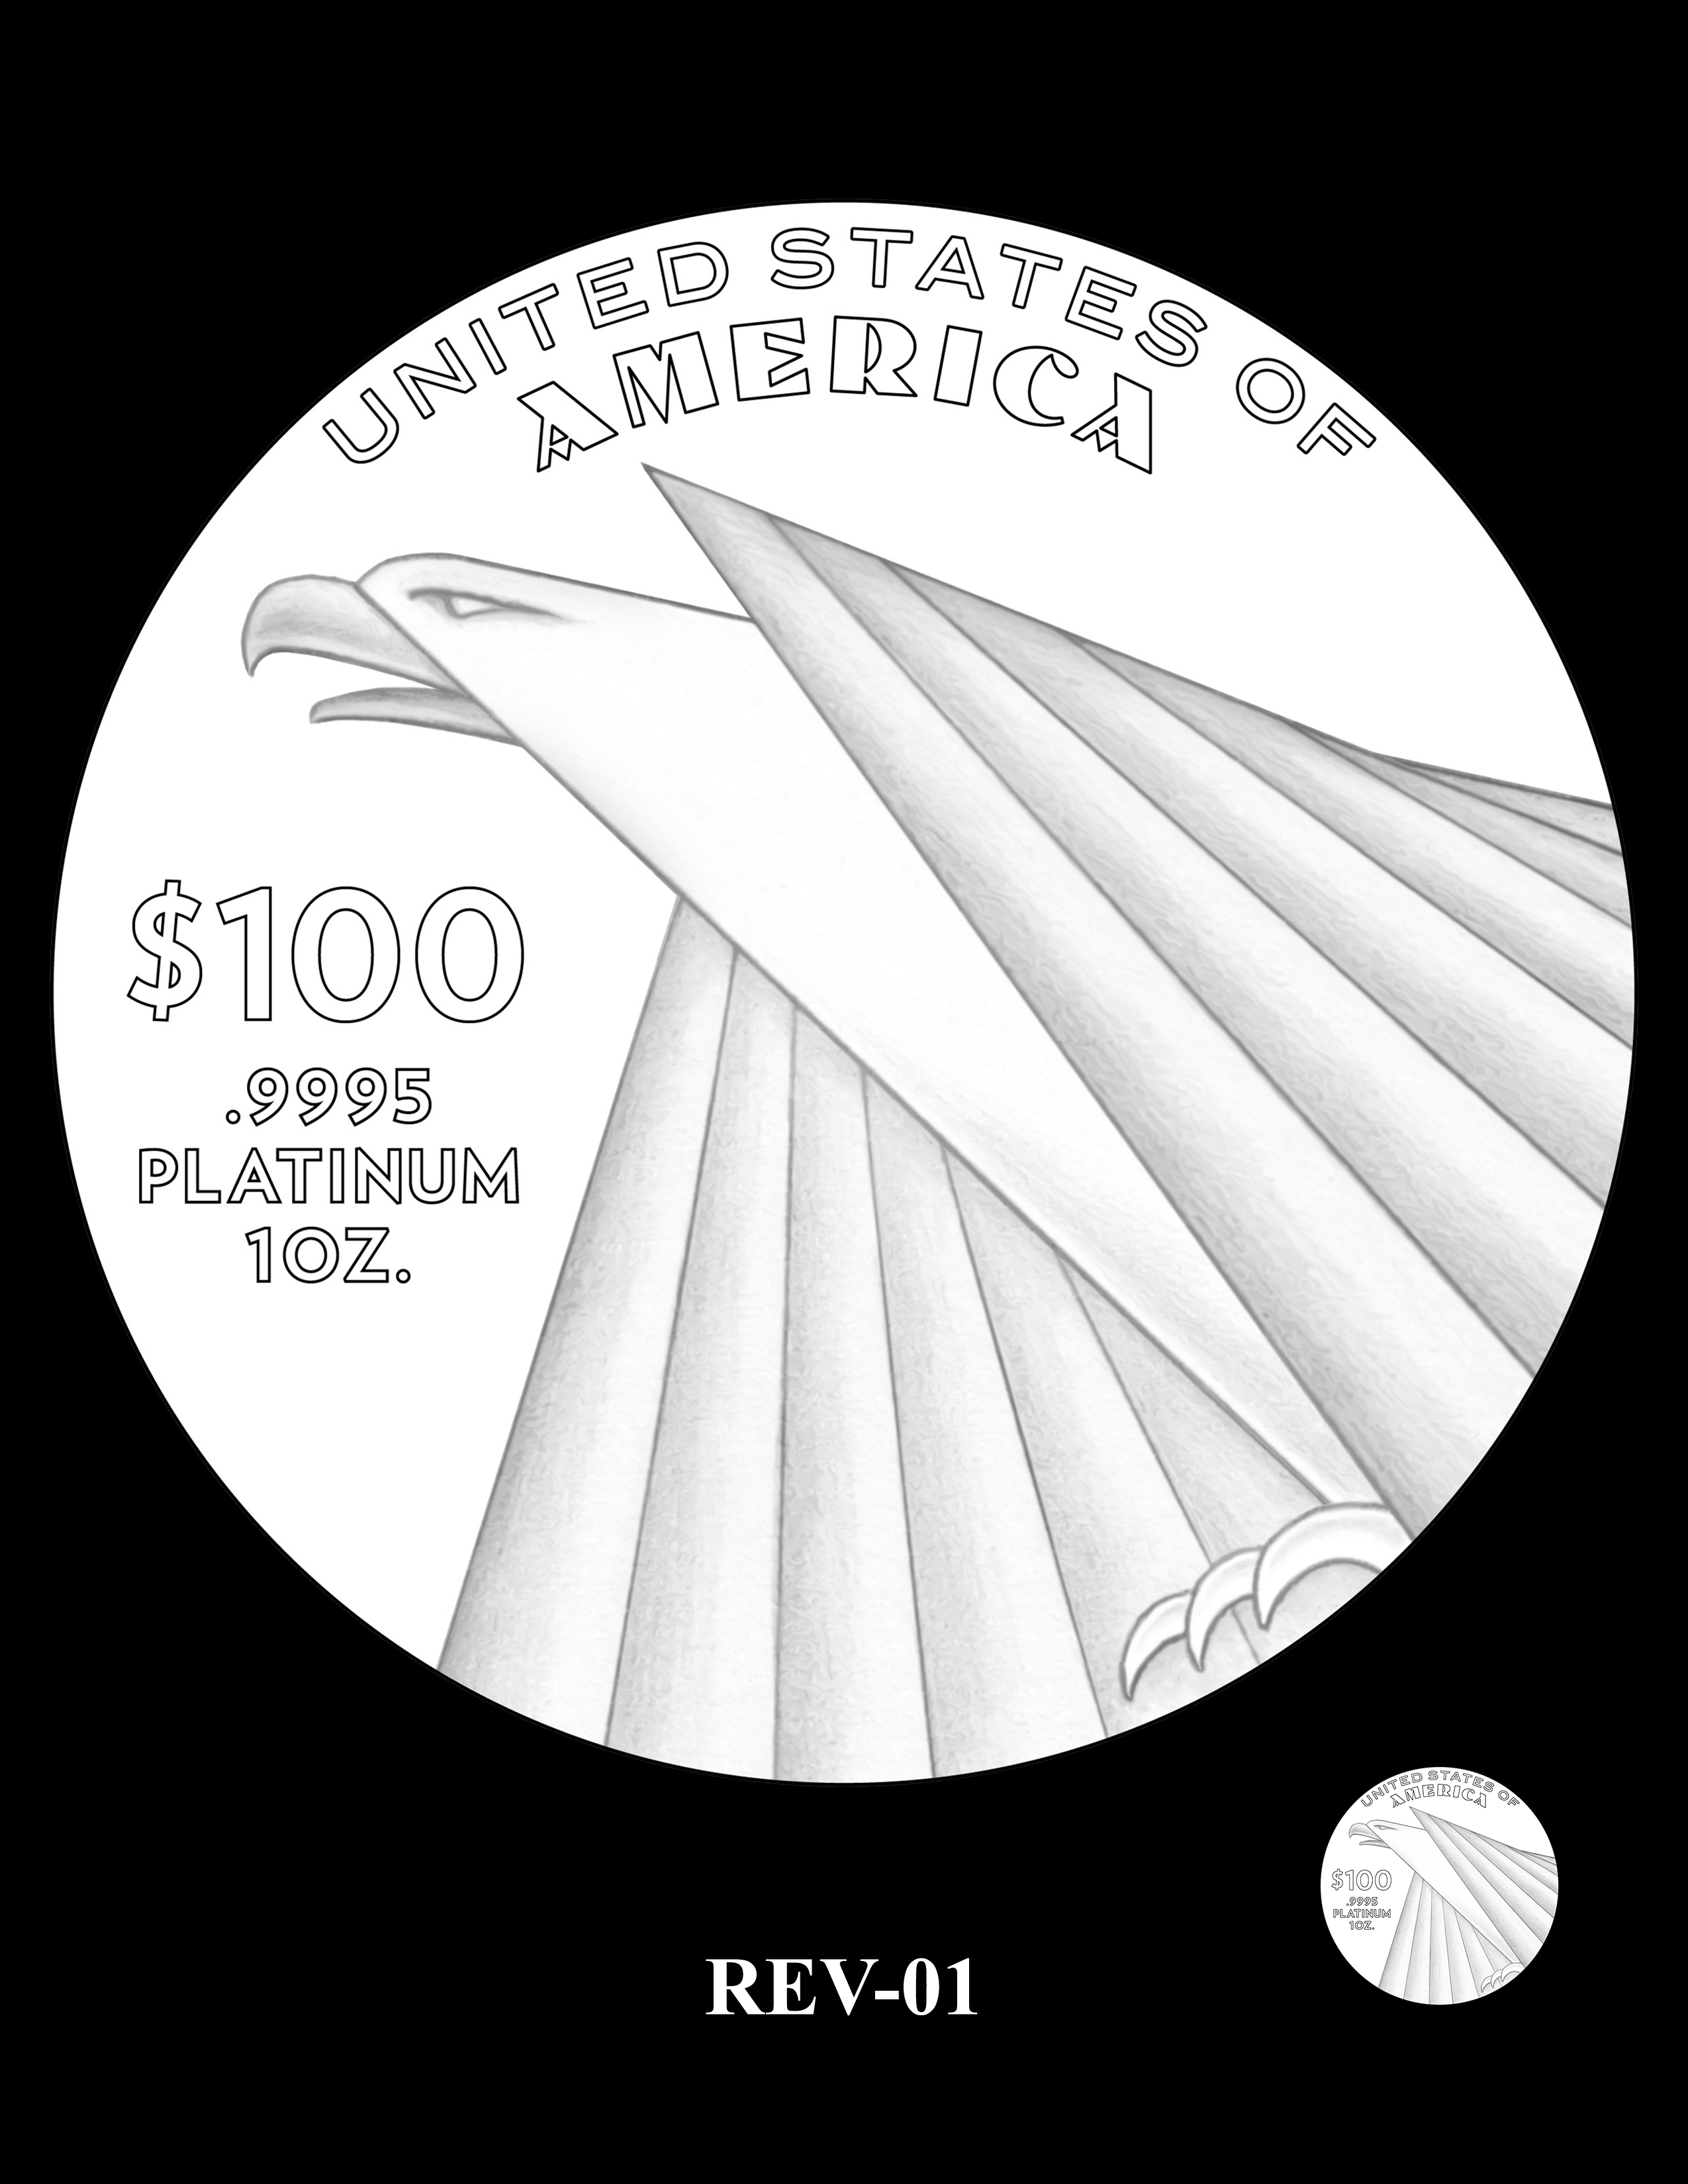 SET01-REV-01 - 2018 2019 and 2020 American Eagle Platinum Proof Program